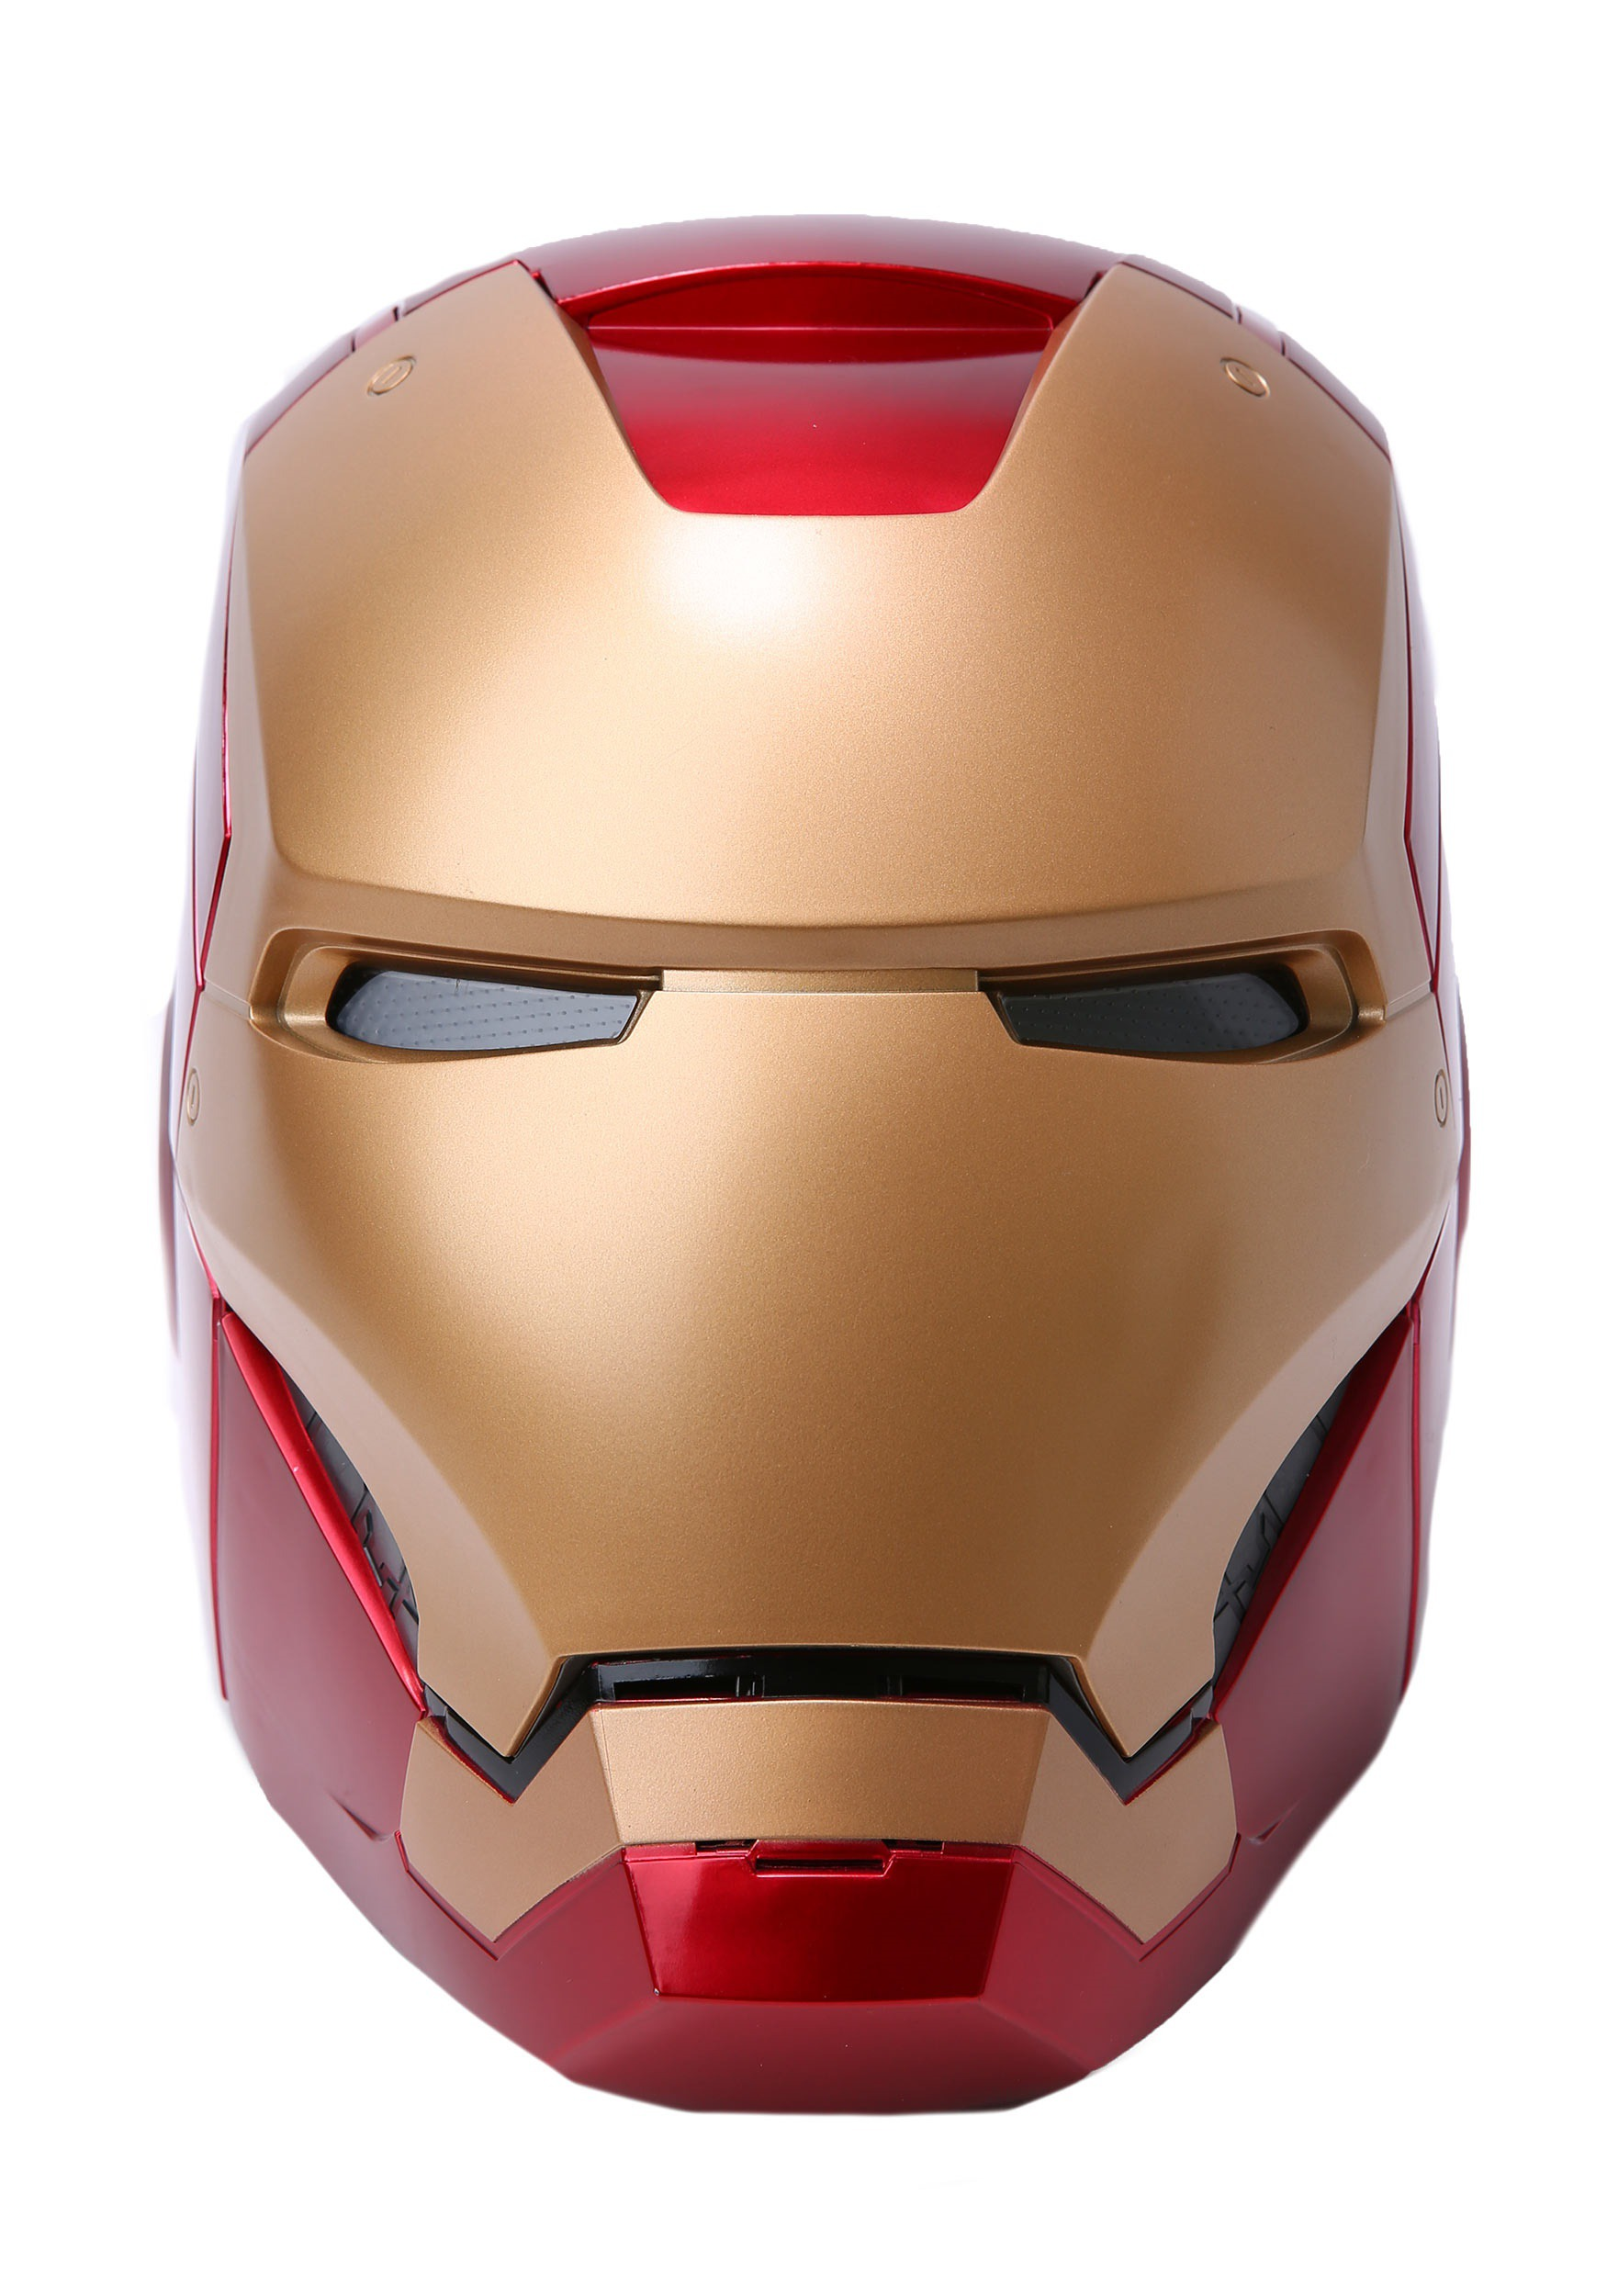 INOpets.com Anything for Pets Parents & Their Pets Marvel Legends Gear Iron Man Helmet Replica